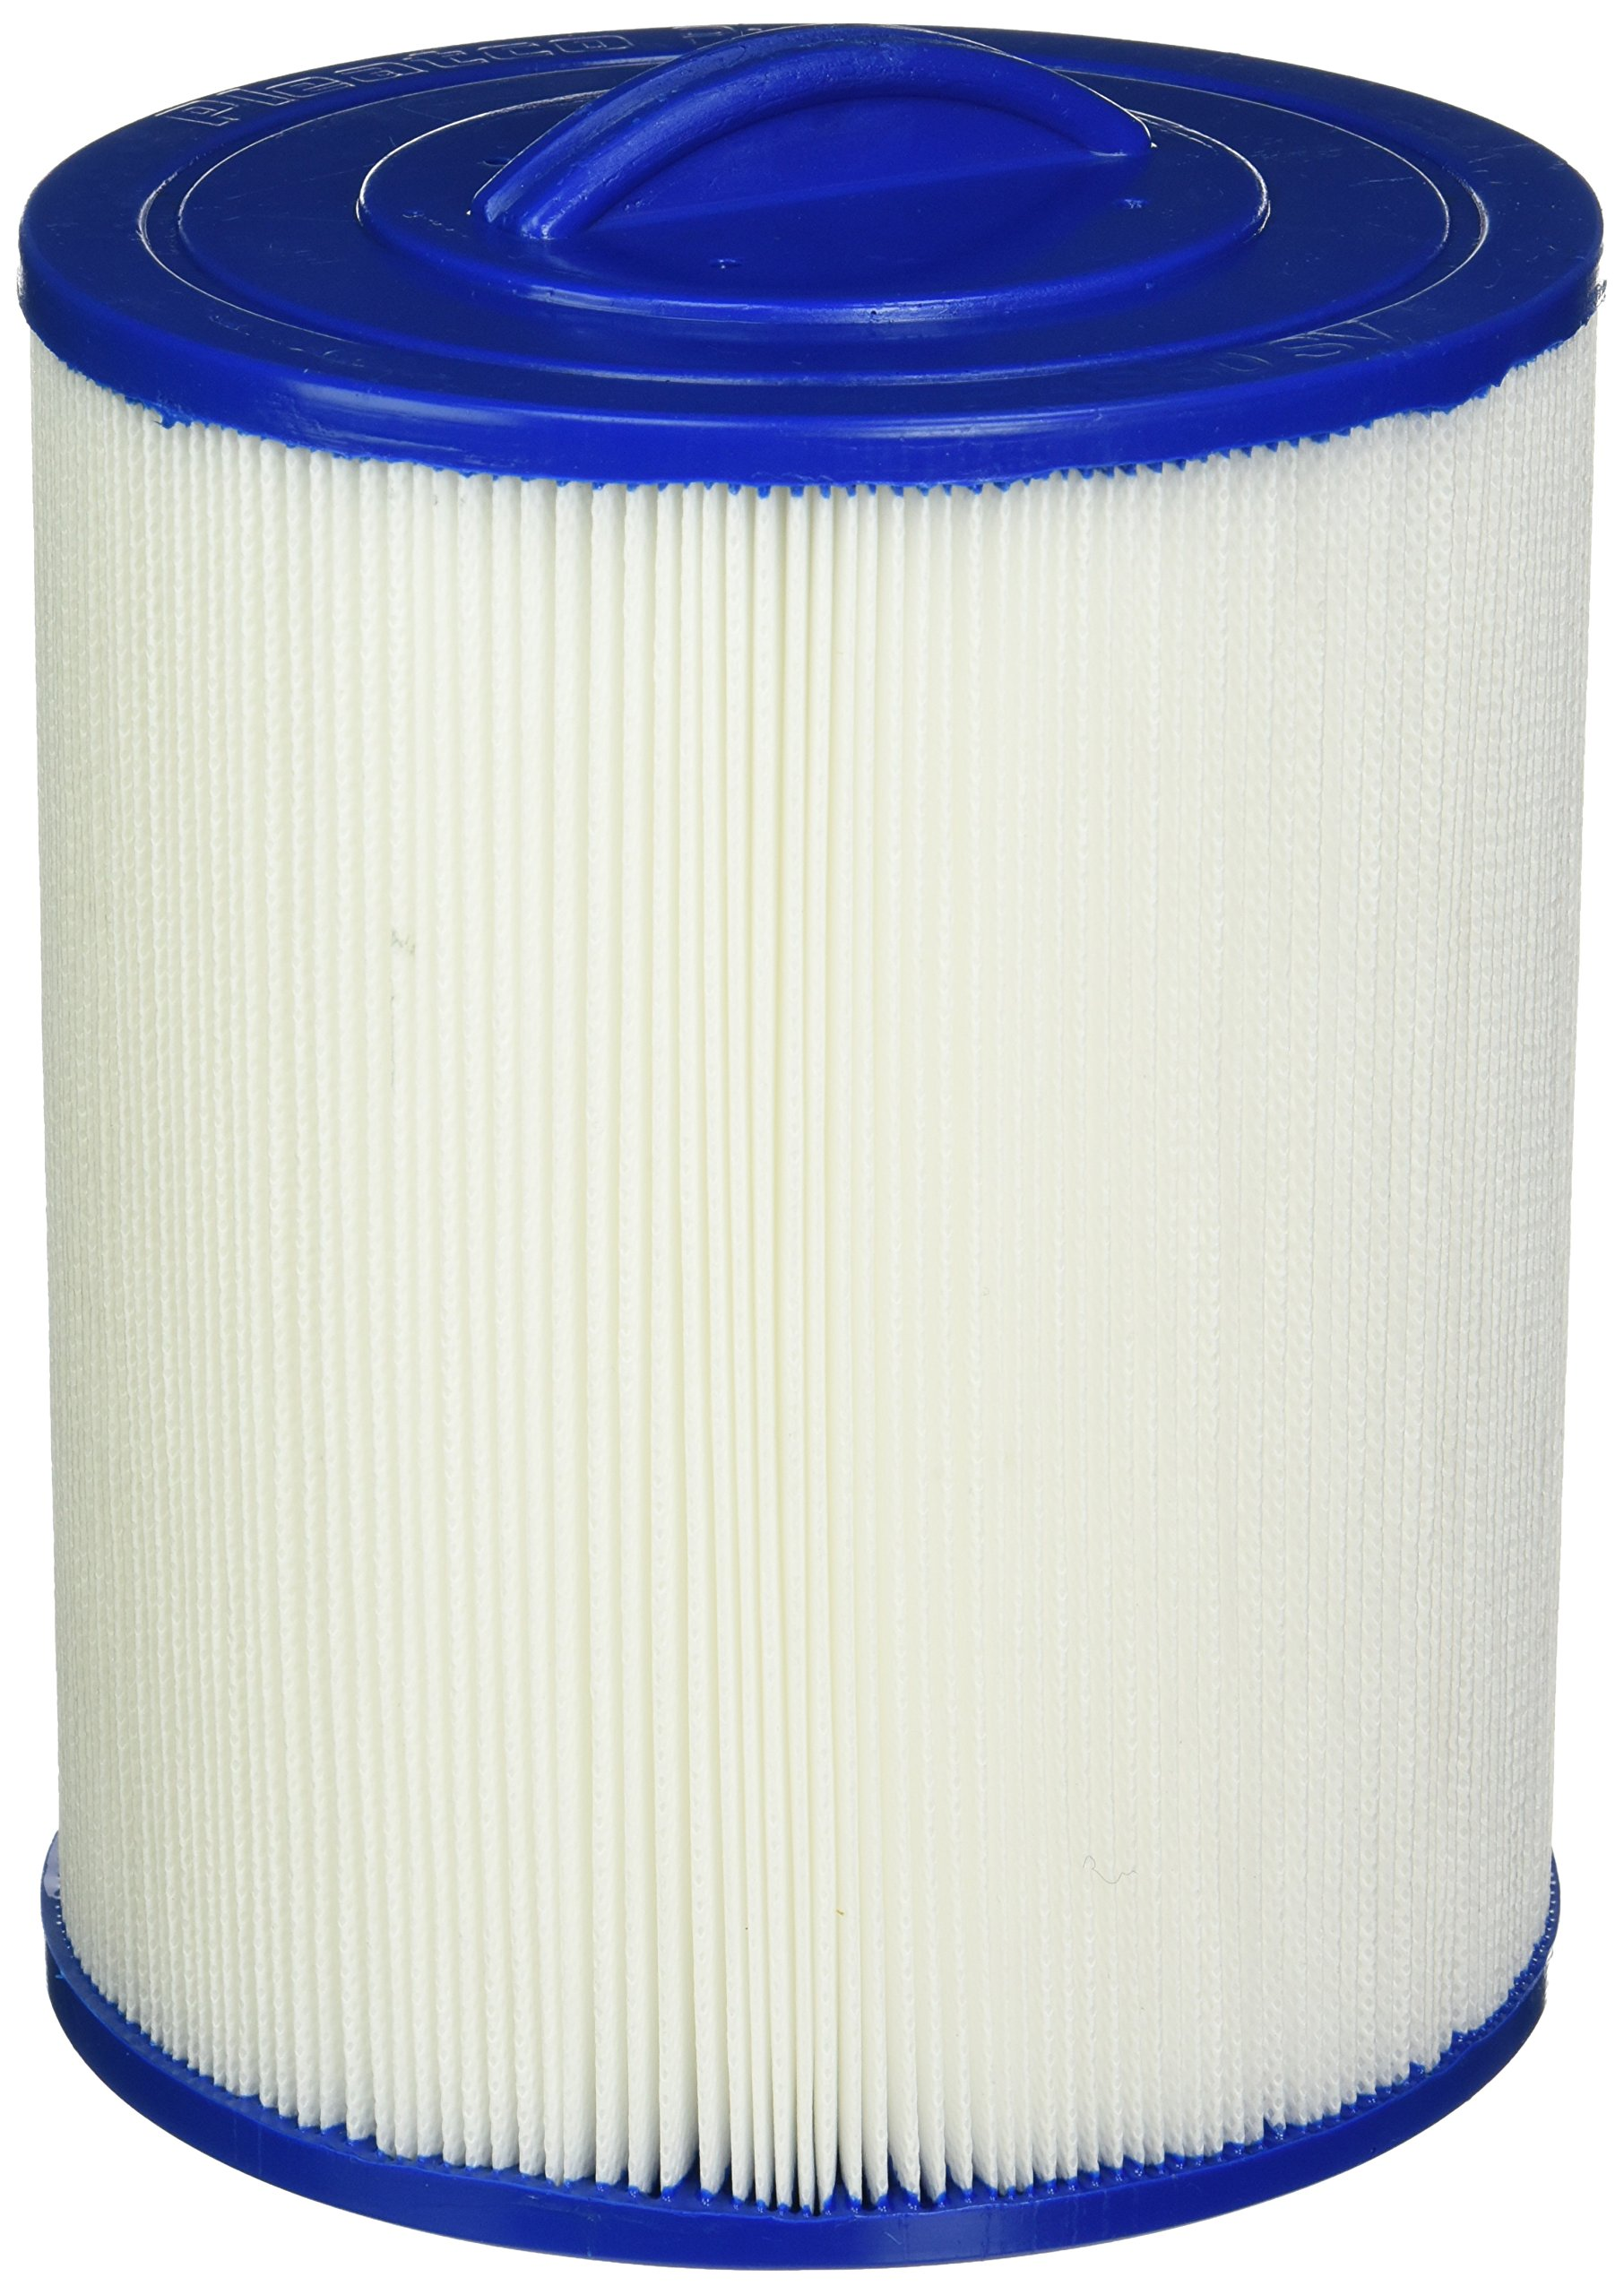 Pleatco PAS50-SV-F2M Replacement Cartridge for Artesian Spas 50 SF, 1 Cartridge by Pleatco